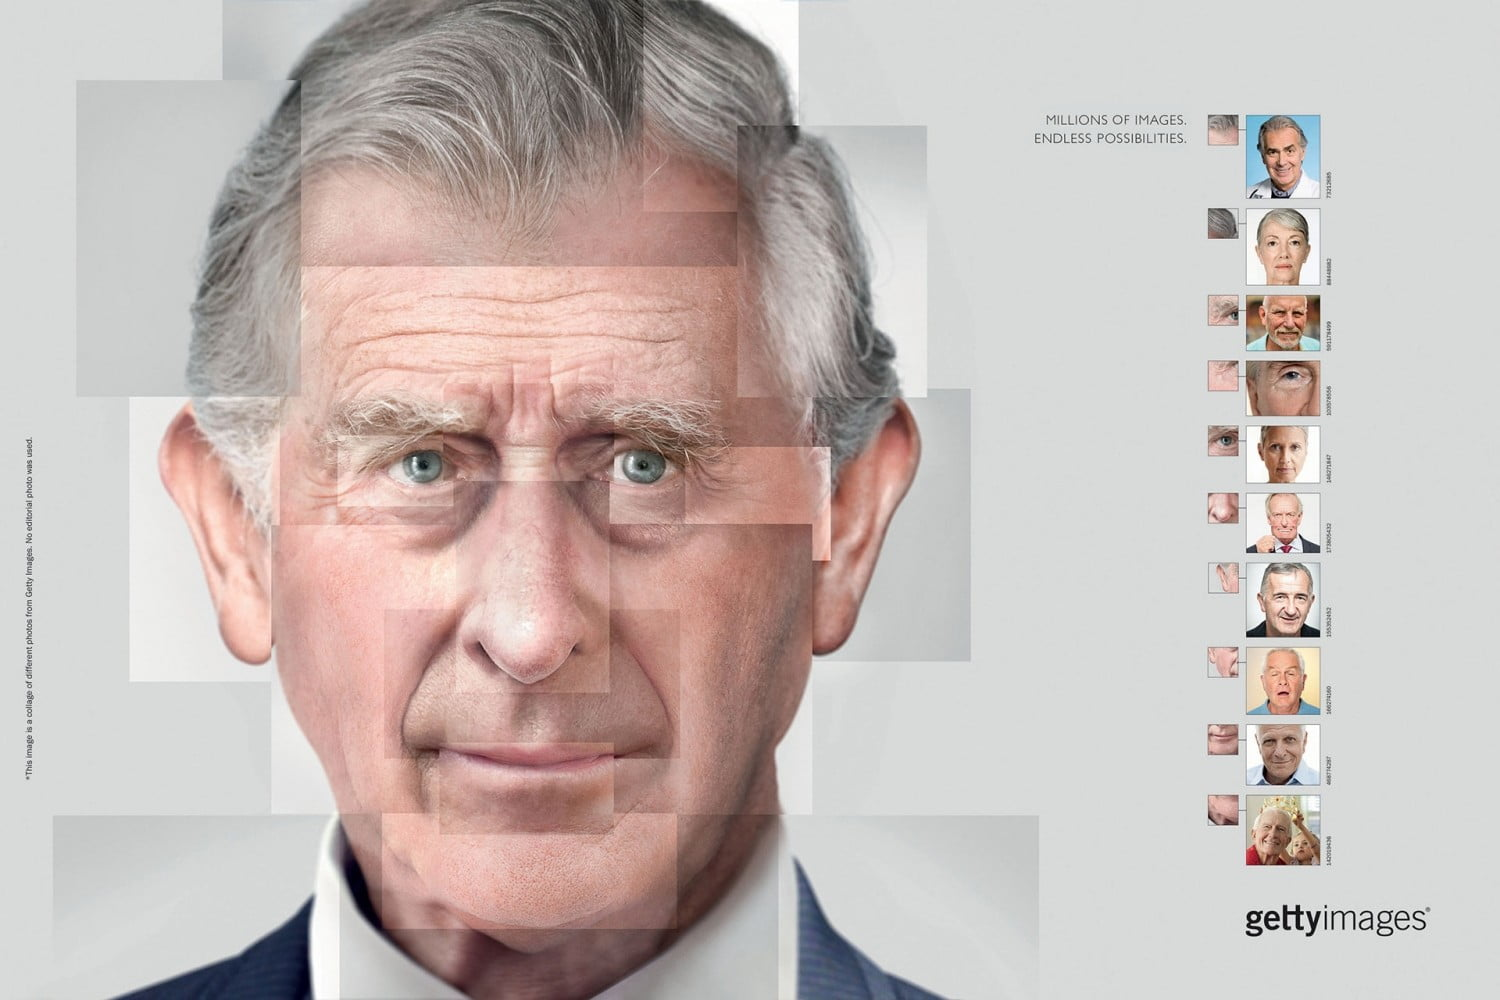 getty images stock photos ad campaign pope prince charles endless possibilities 1